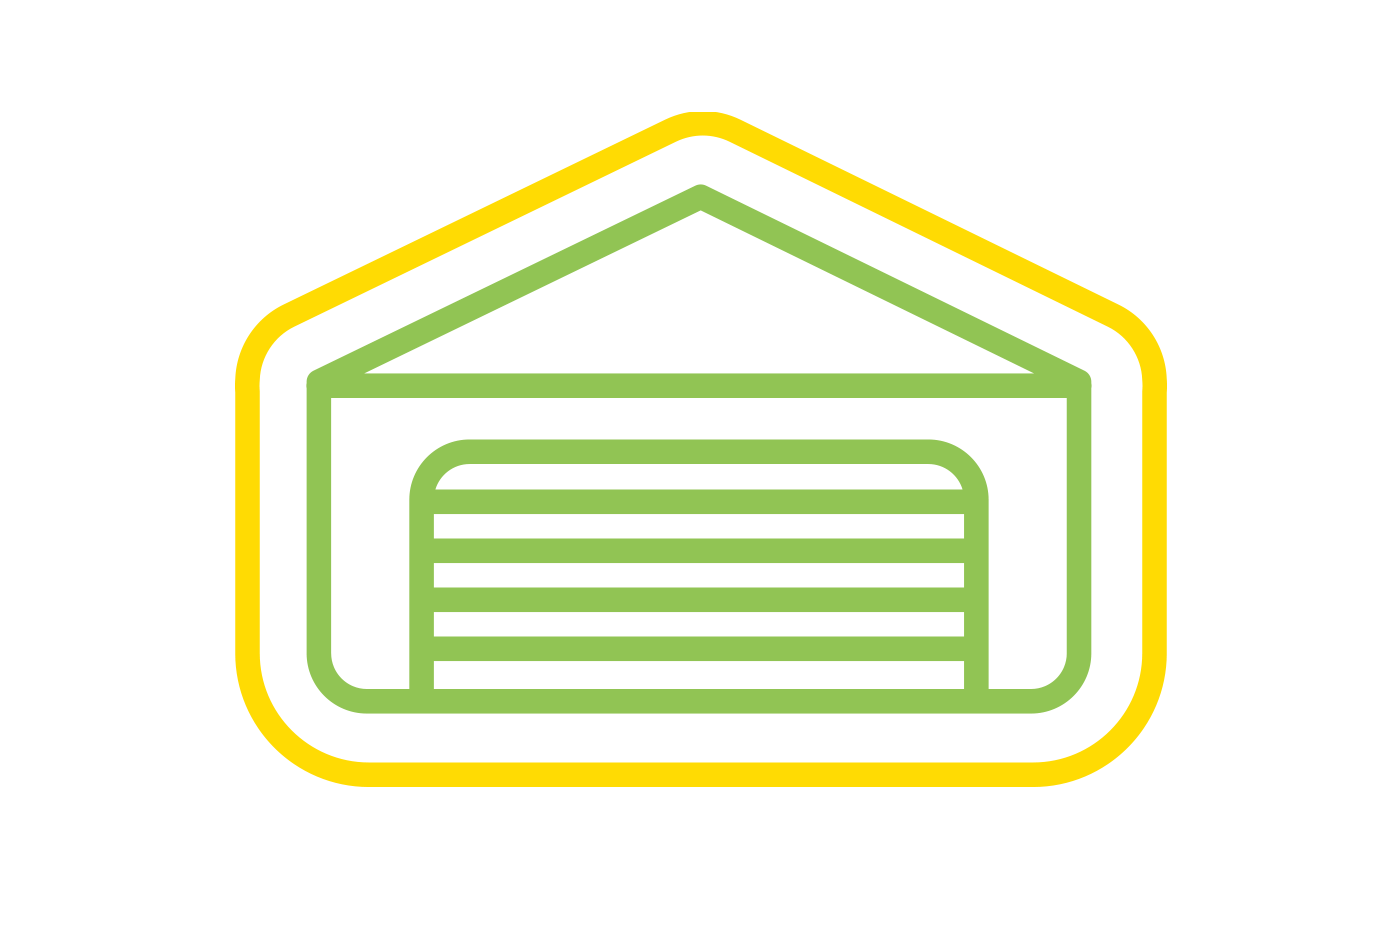 UK customs approved bonded warehouse icon